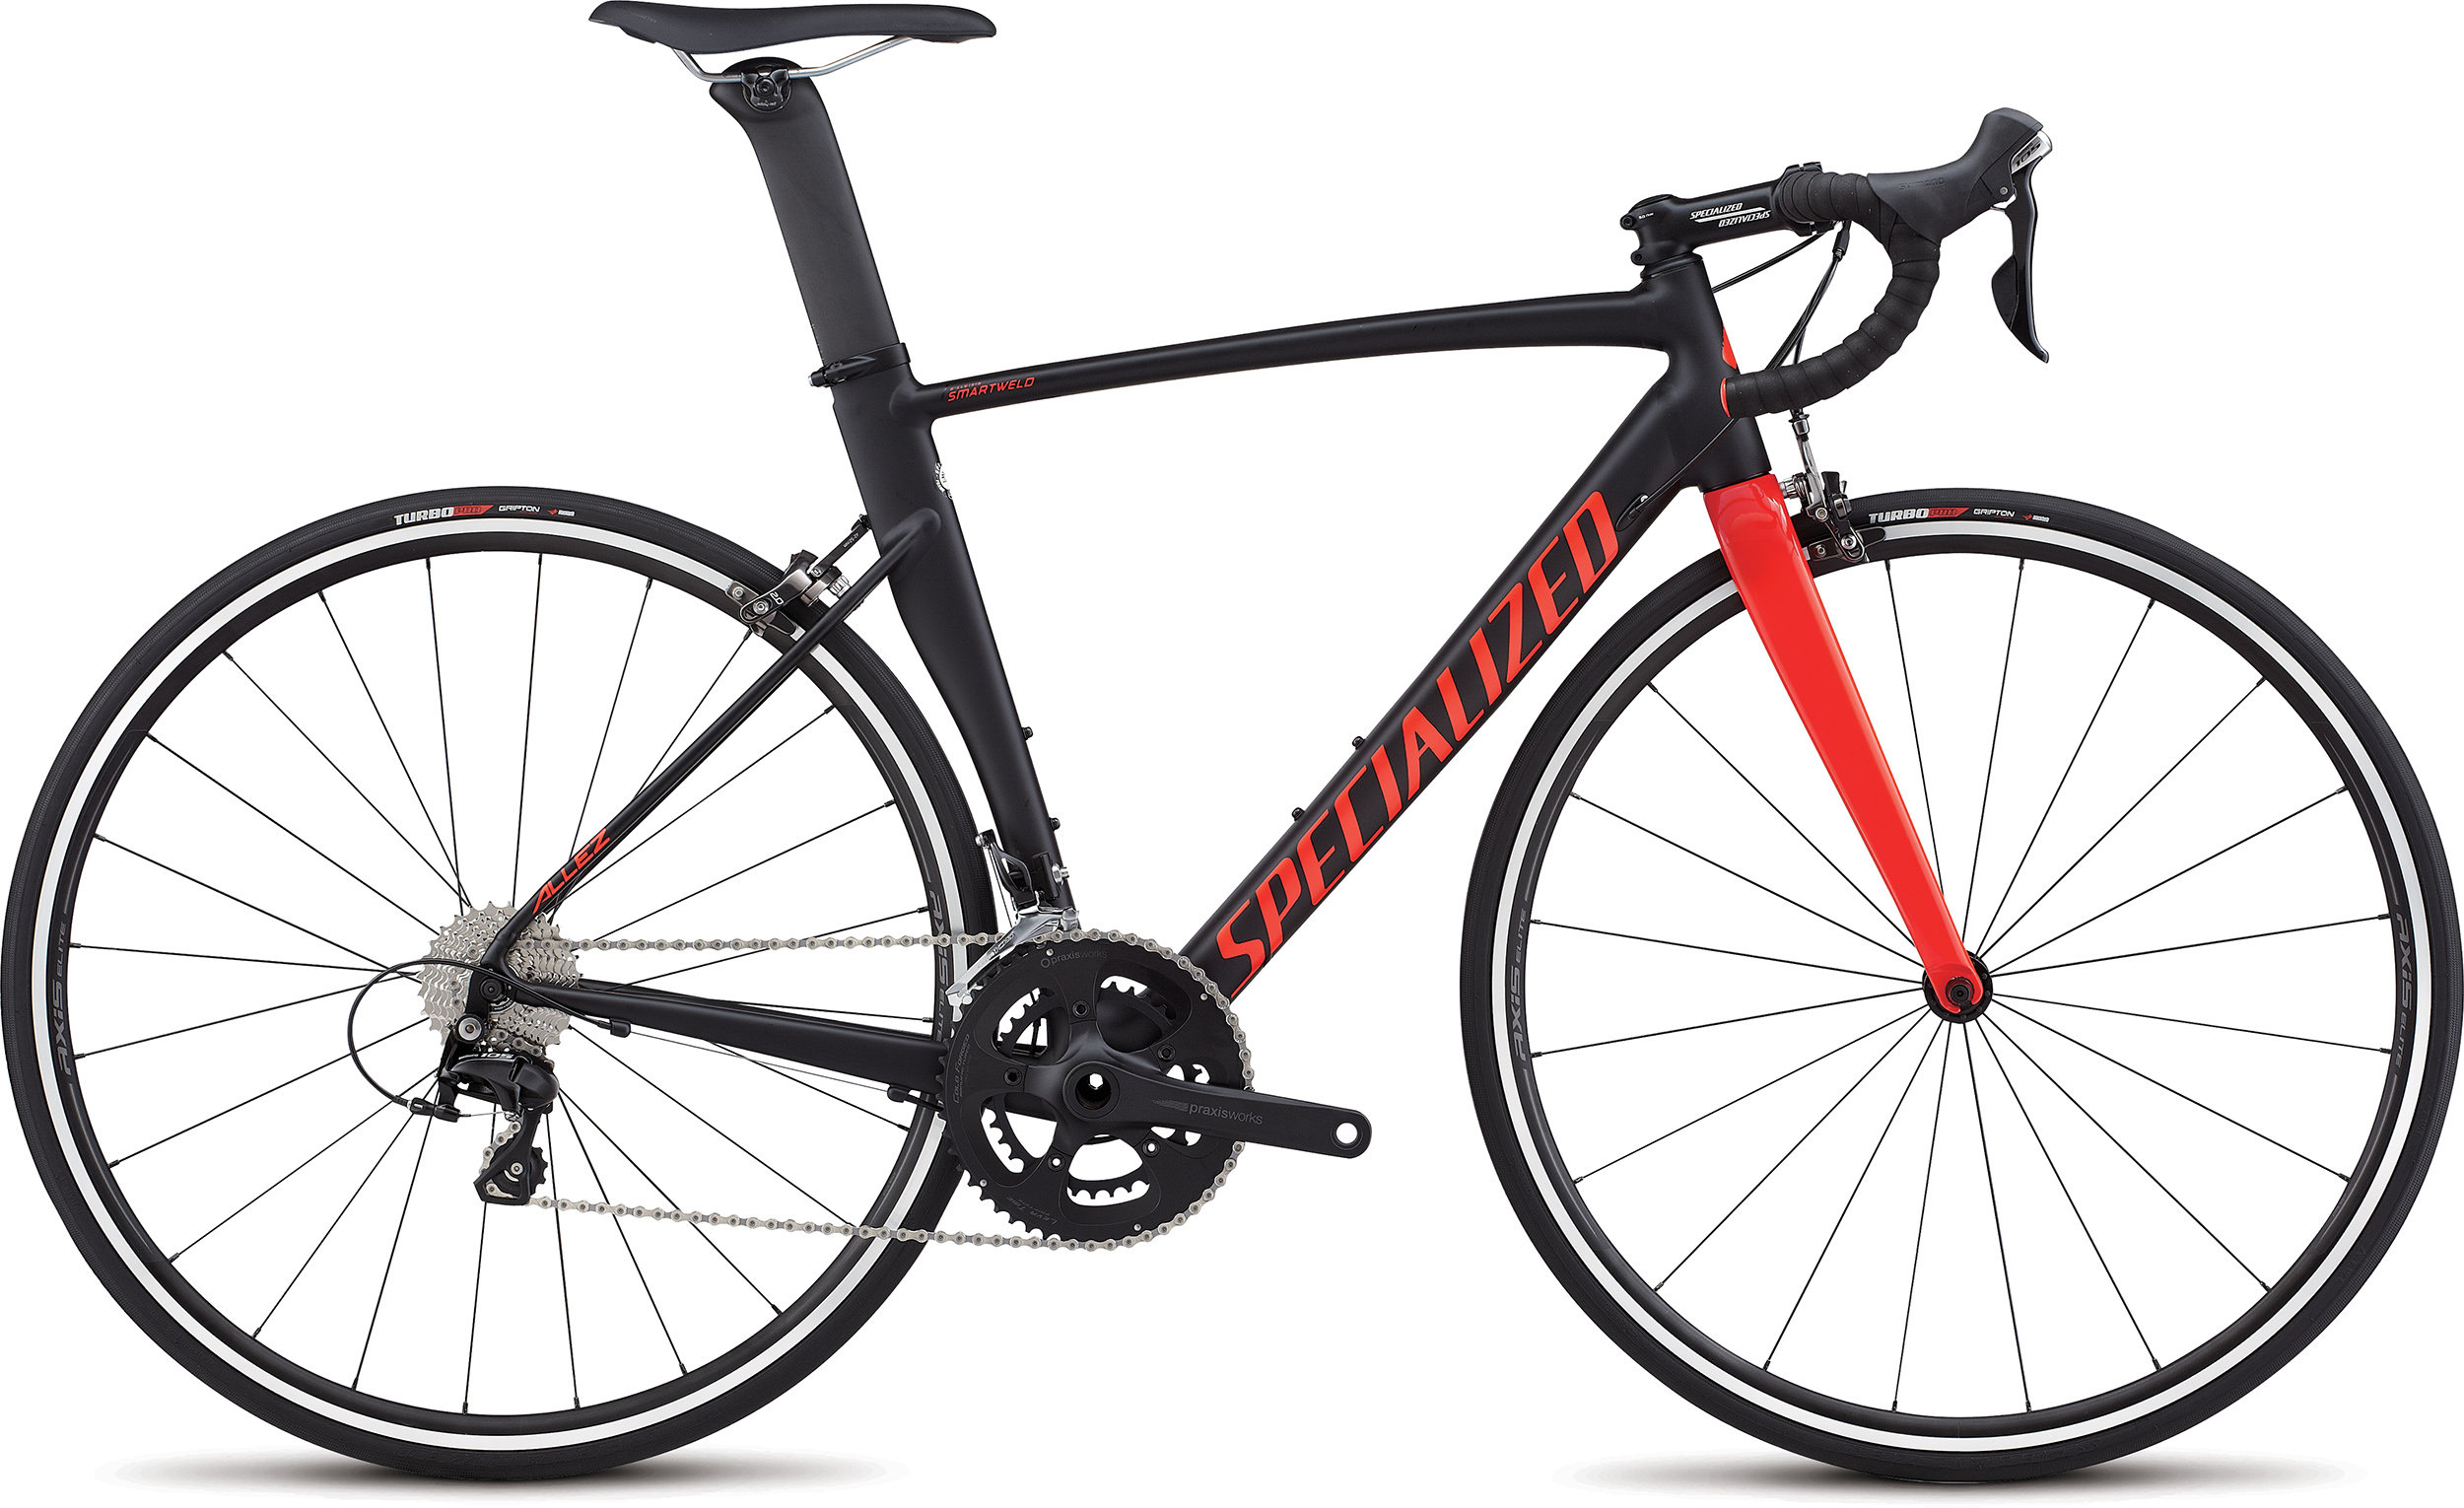 SPECIALIZED ALLEZ DSW SL SPRINT COMP BLK/RKTRED 49 - Bike Maniac